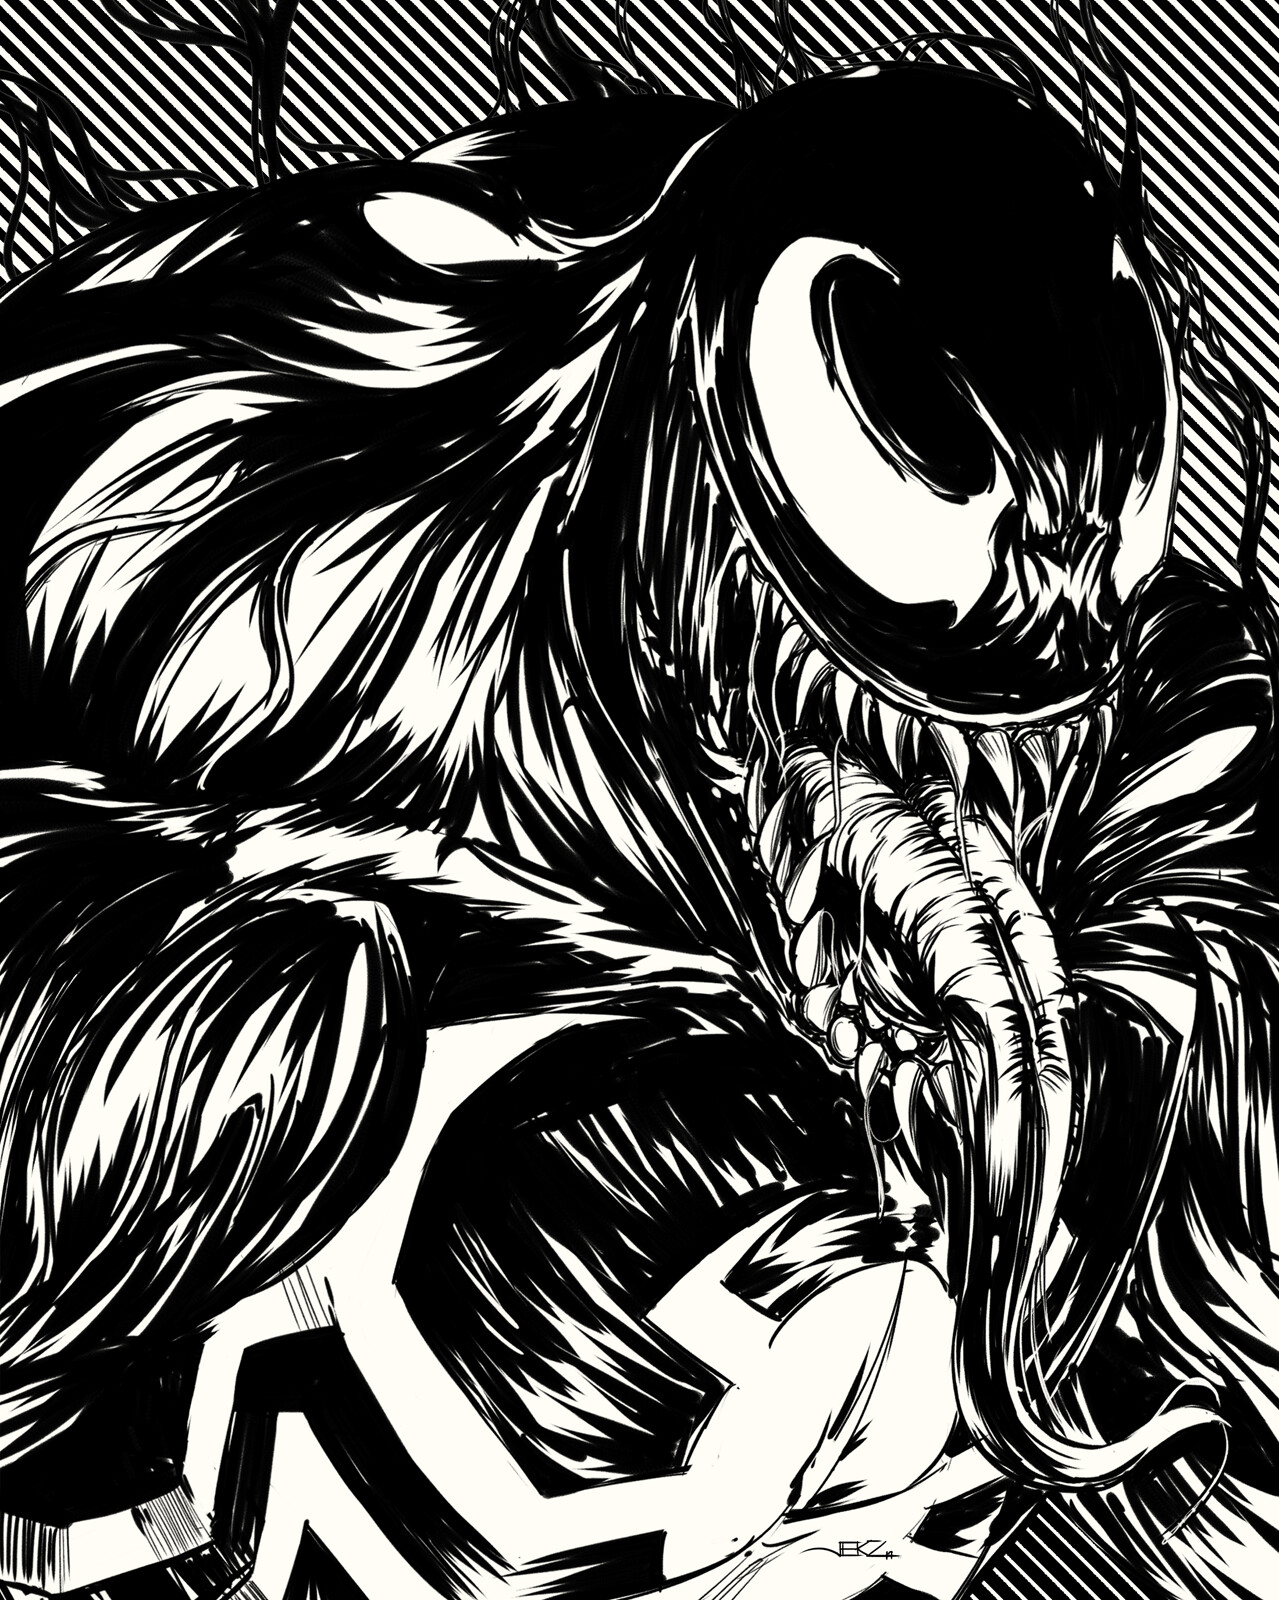 Inktober 2019 (Day 19/31) - Venom of Marvel Comics  Booy, this guy, enjoyed doing the anatomy of this one. 🤓